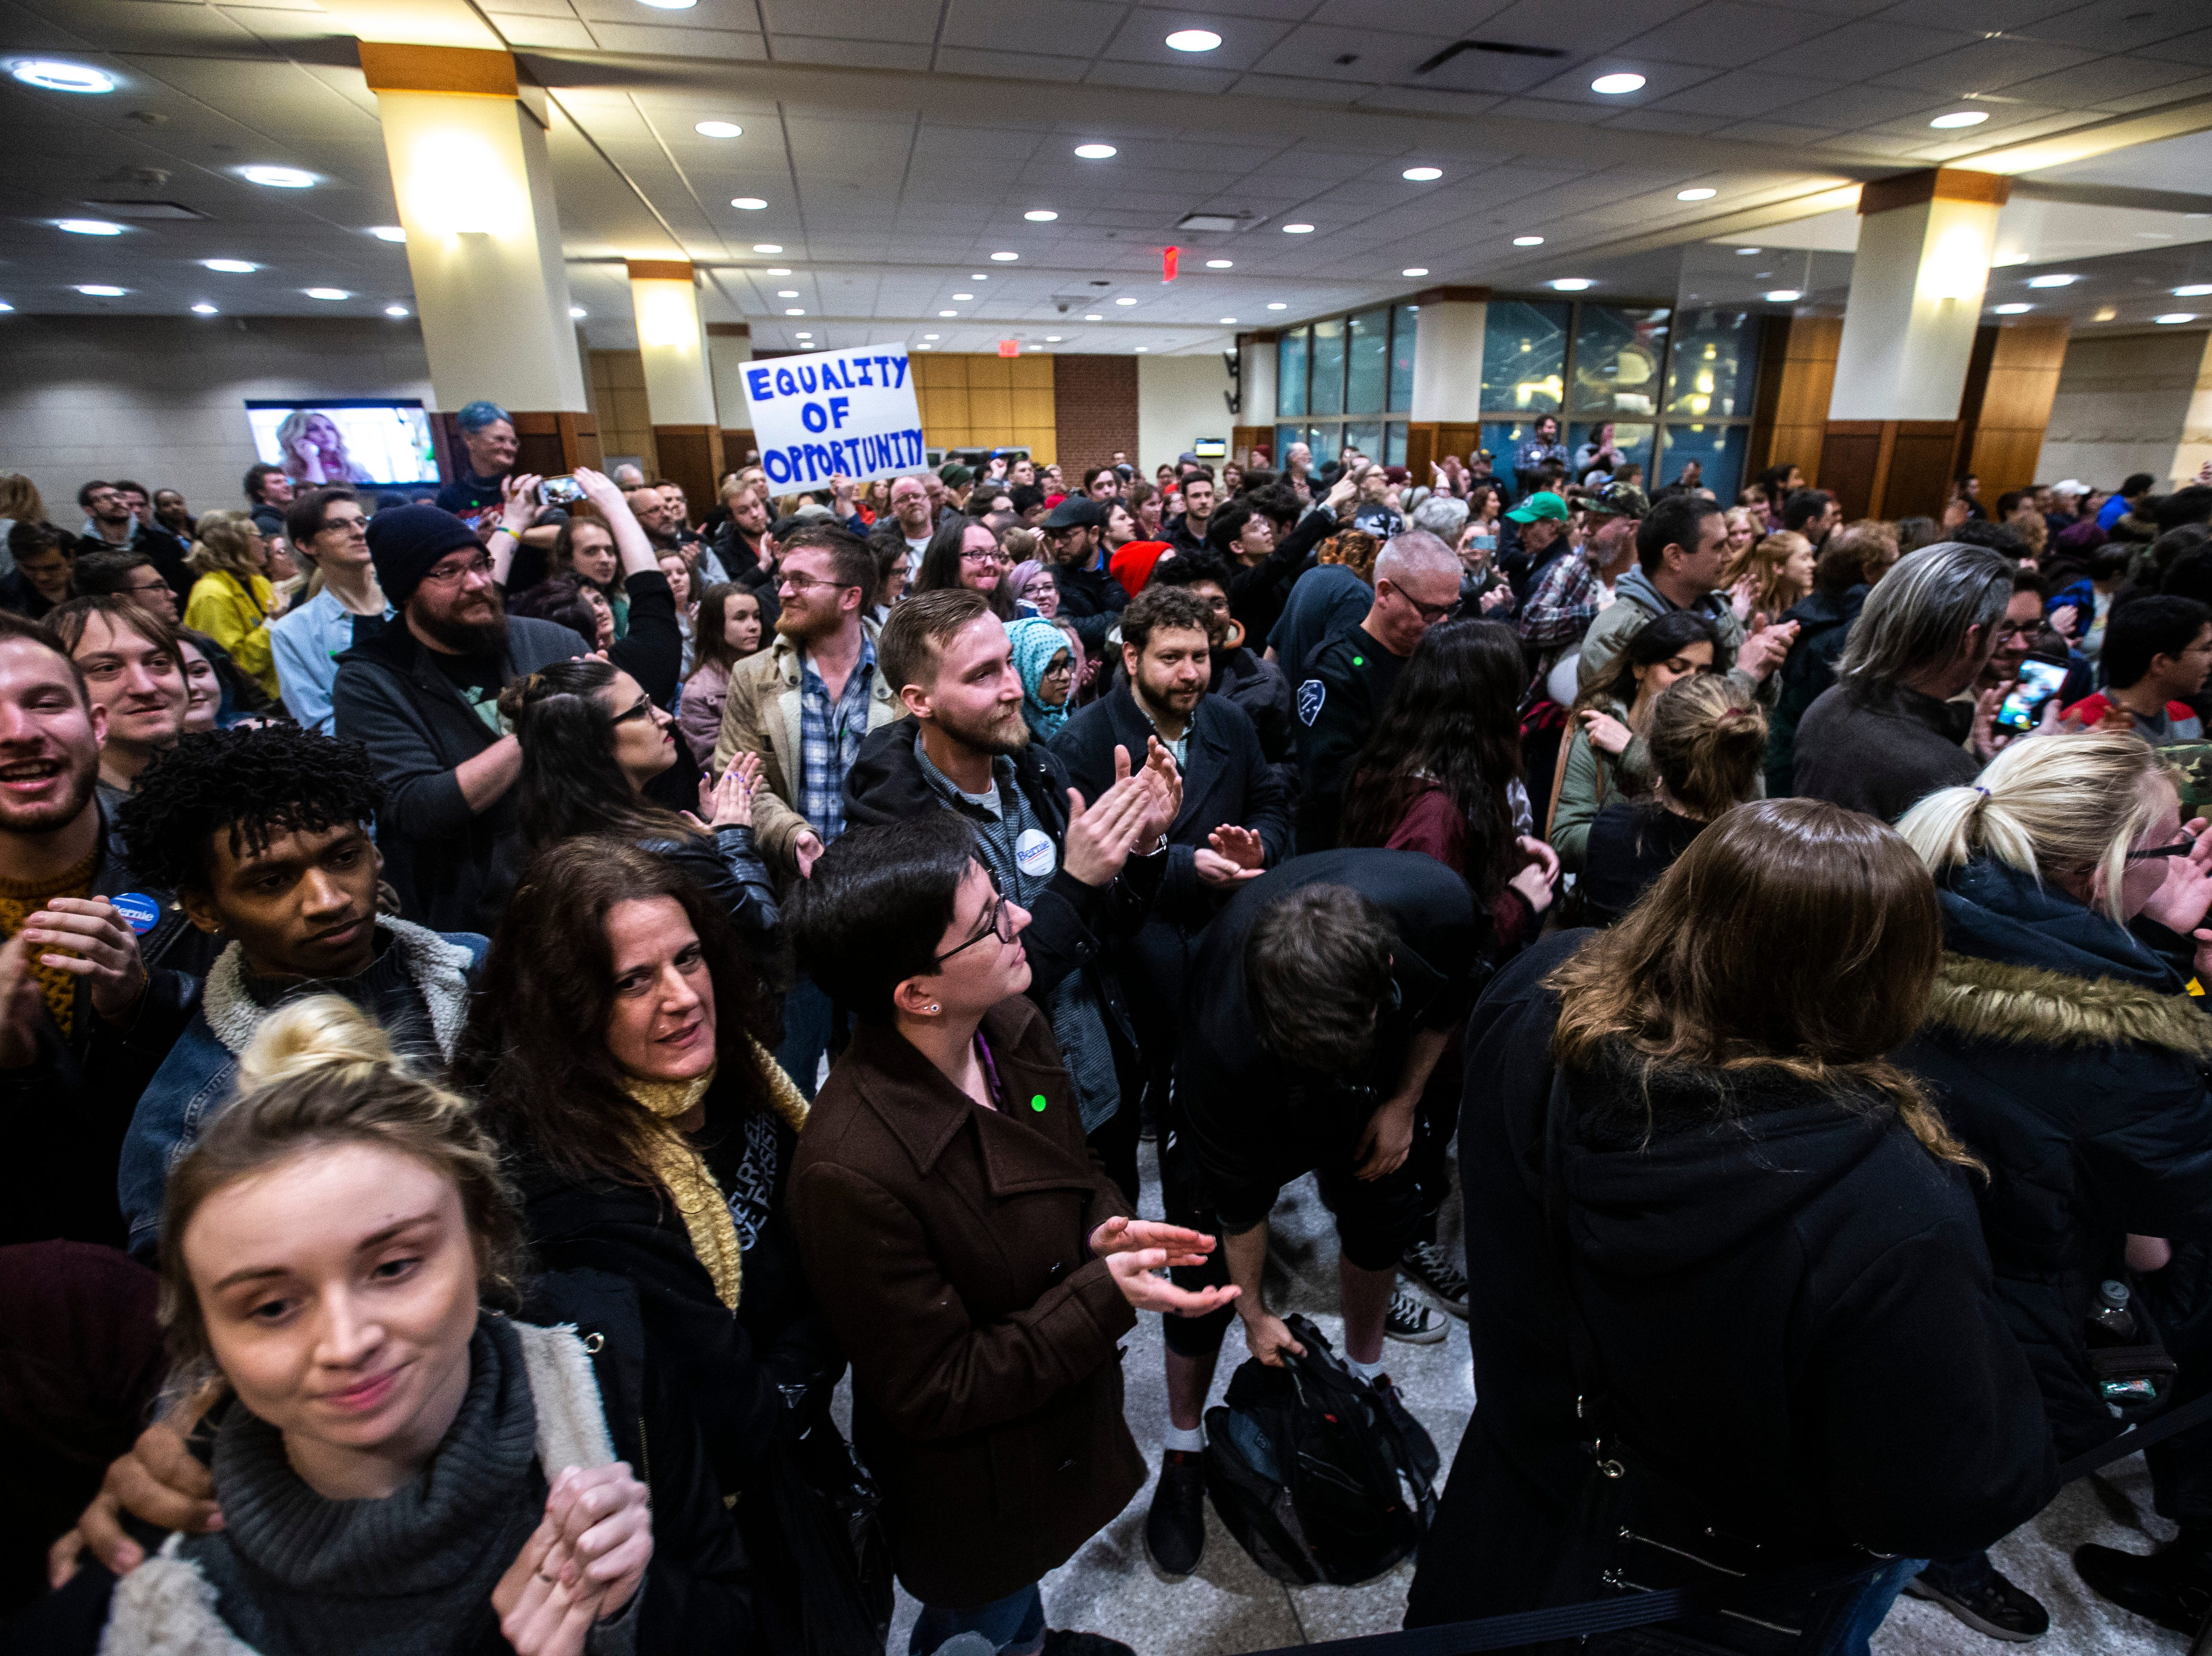 Members of the overflow crowd listen to U.S. Sen. Bernie Sanders, I-VT, speak at an event during his first trip to the state ahead of the caucus, Friday, March 8, 2019, at the Iowa Memorial Union on the University of Iowa campus in Iowa City, Iowa.